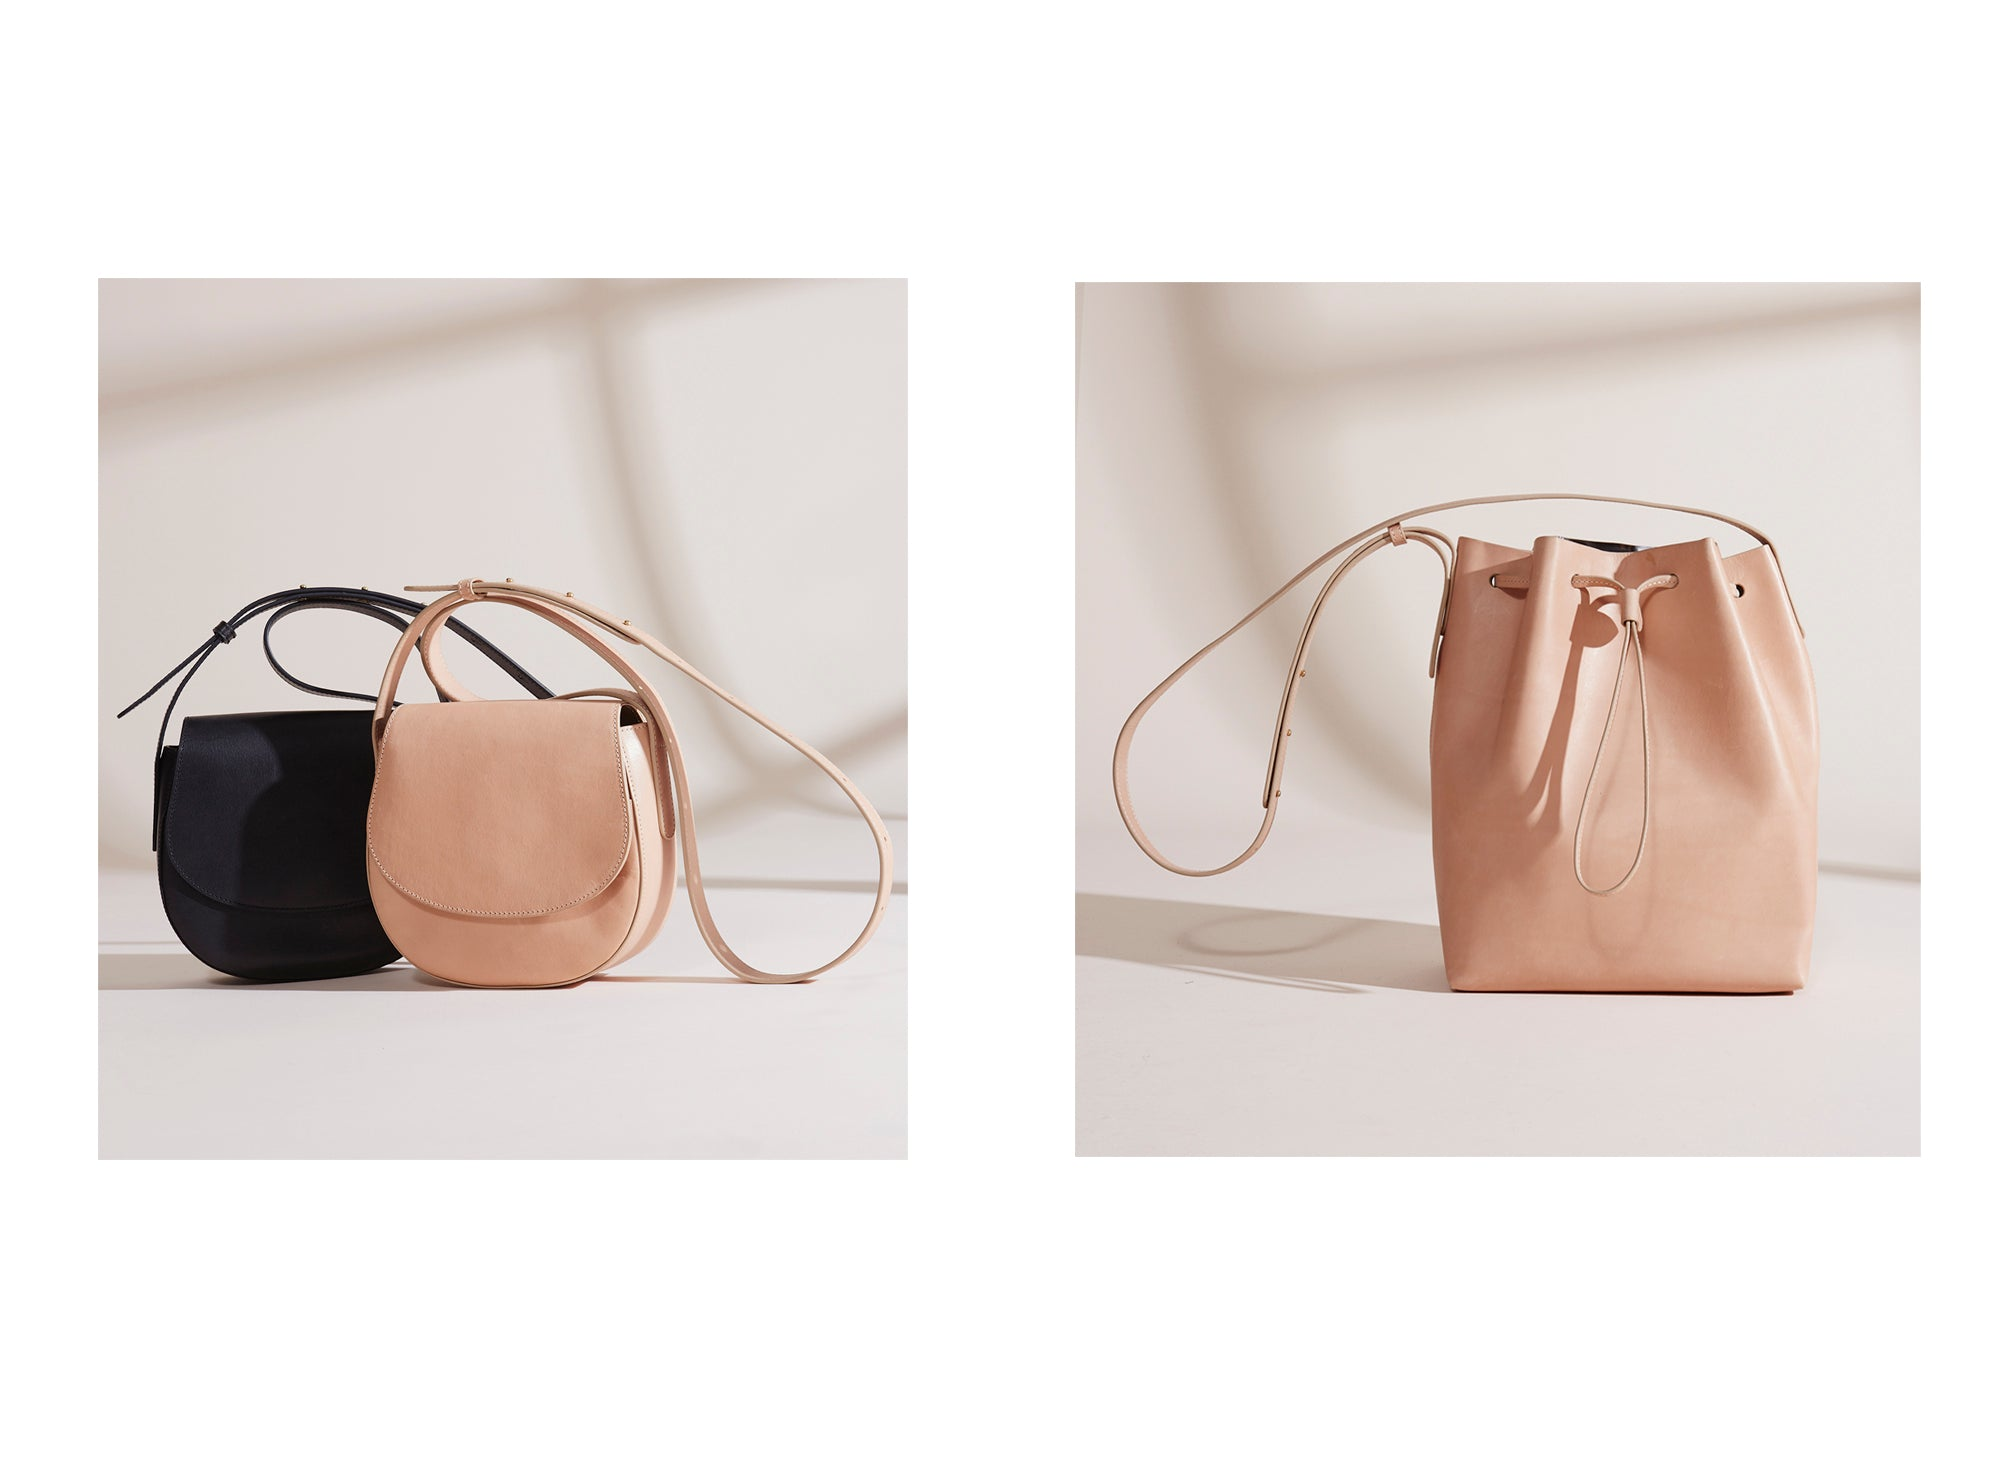 Luxe Deluxe Summer 16 | The Temptations Crossbody Bag and Bucket Bag